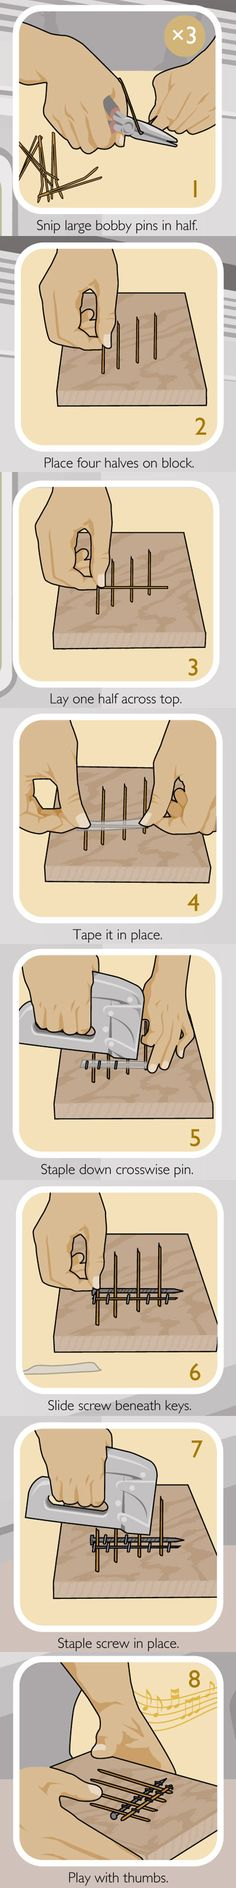 Construct a Thumb Piano. A wood block, bobby pins, staples and a screw are all you need to assemble a little wood block with pins that you press with your thumbs.